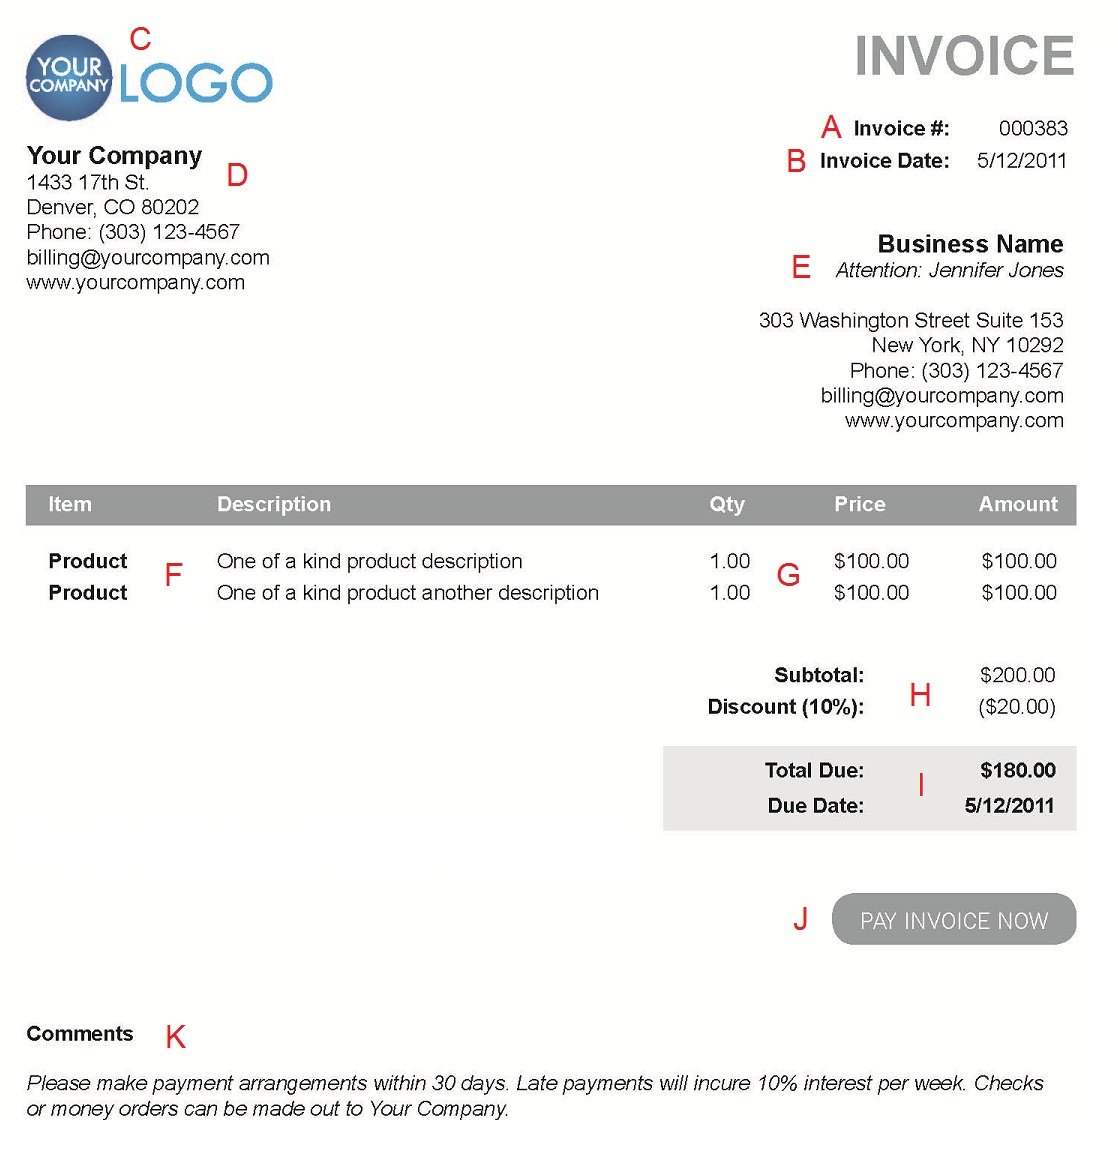 Ultrablogus  Pleasing The  Different Sections Of An Electronic Payment Invoice With Likable A  With Astounding Ar Invoice Also Sample Invoice For Services Rendered In Addition Mazda  Invoice Price And Send An Invoice On Ebay As Well As Zoho Invoice Review Additionally Performance Invoice From Paysimplecom With Ultrablogus  Likable The  Different Sections Of An Electronic Payment Invoice With Astounding A  And Pleasing Ar Invoice Also Sample Invoice For Services Rendered In Addition Mazda  Invoice Price From Paysimplecom